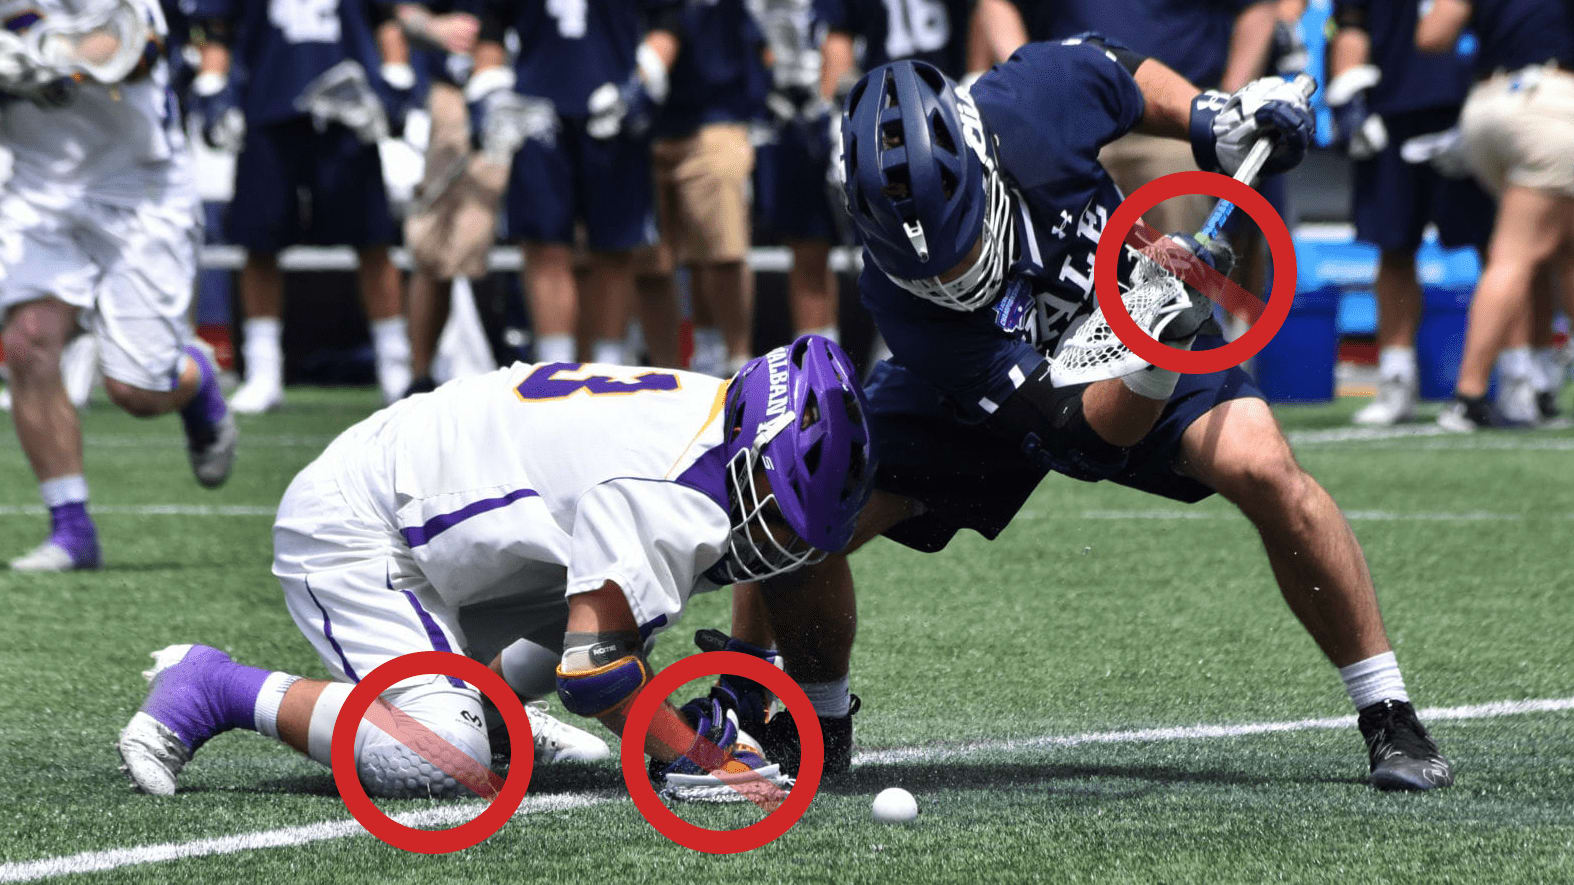 face-off rules change ryan conwell 2020 2021 yale albany